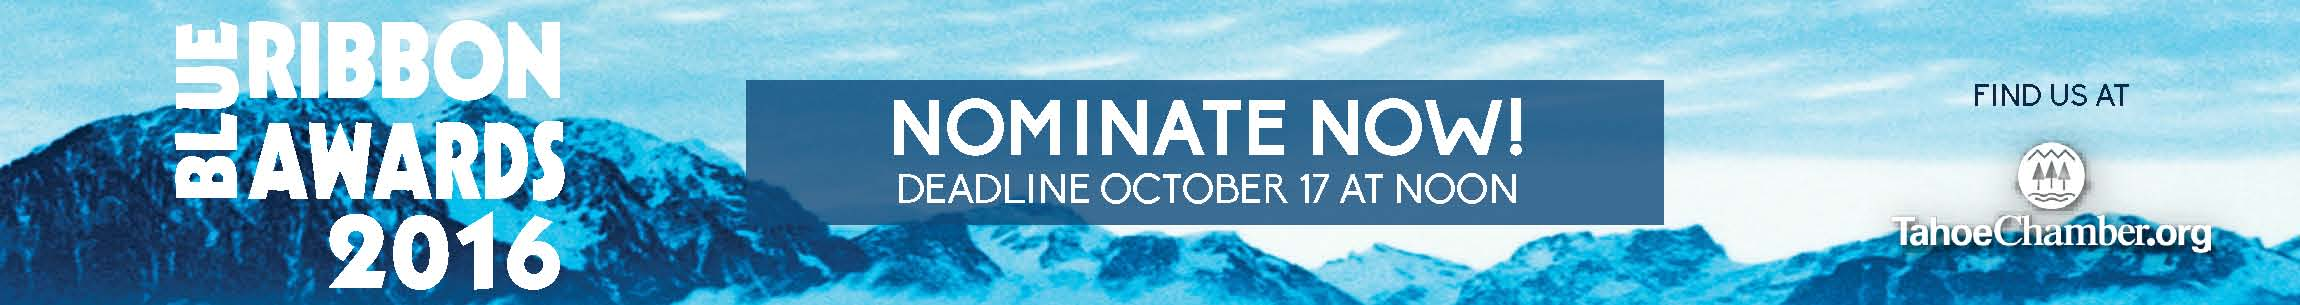 http://www.tahoechamber.org/events/details/2016-blue-ribbon-awards-nominations-13054